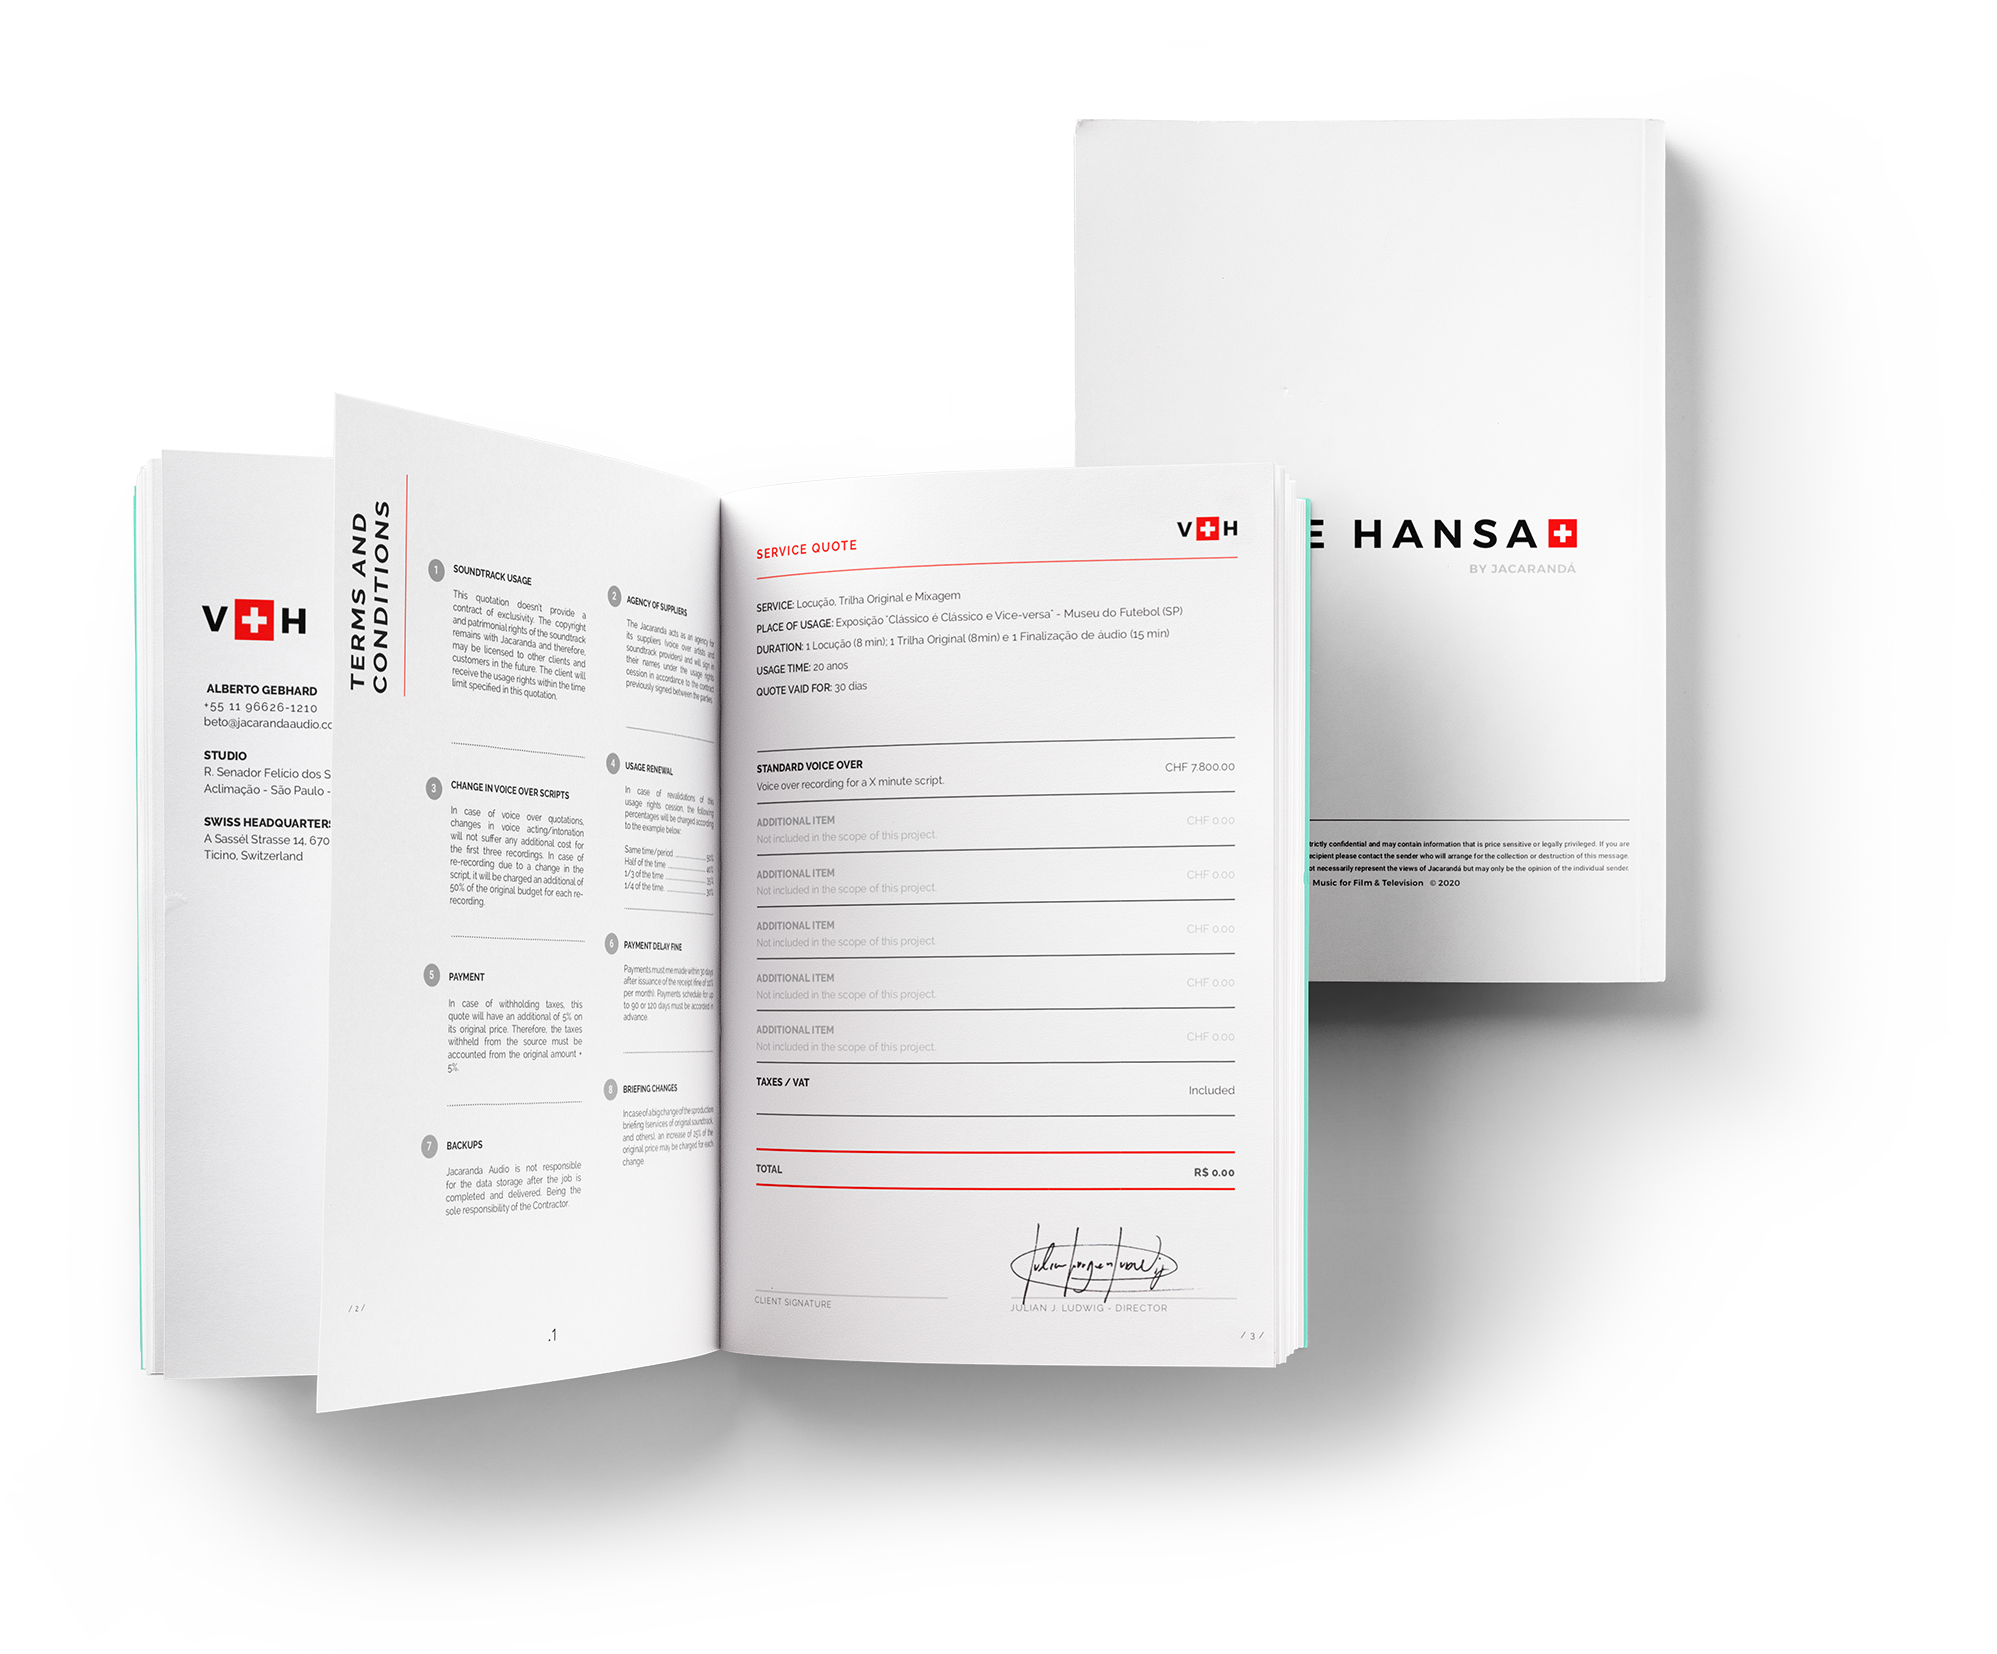 Voice Hansa - Voice-over Agency based in Switzerland